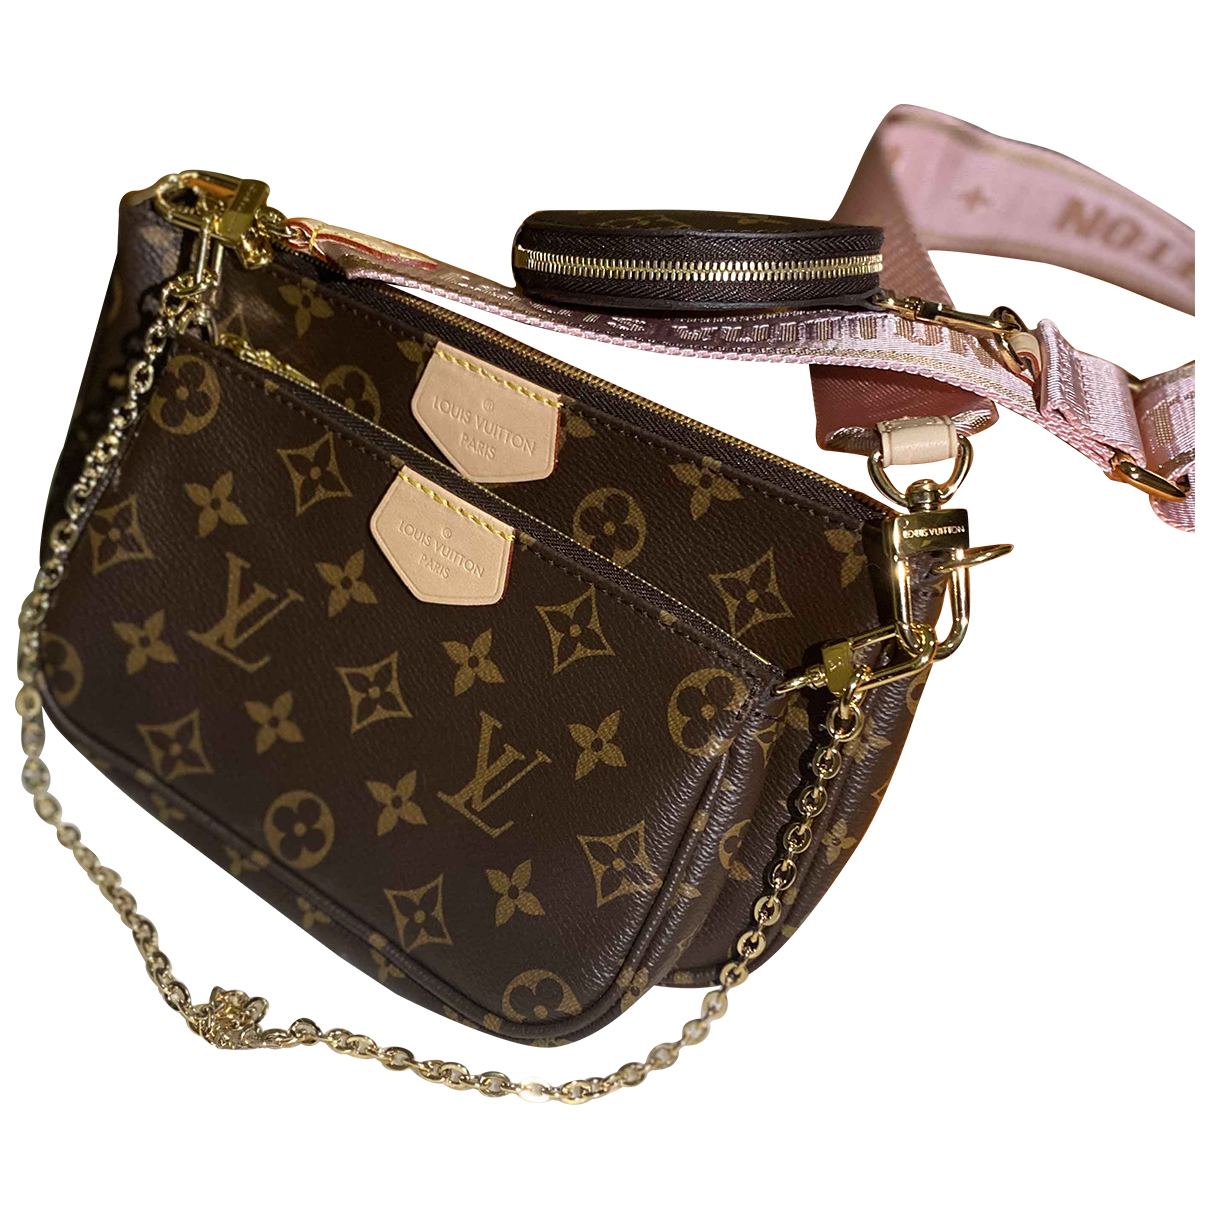 Pochette Multi Pochette Access de Lona Louis Vuitton